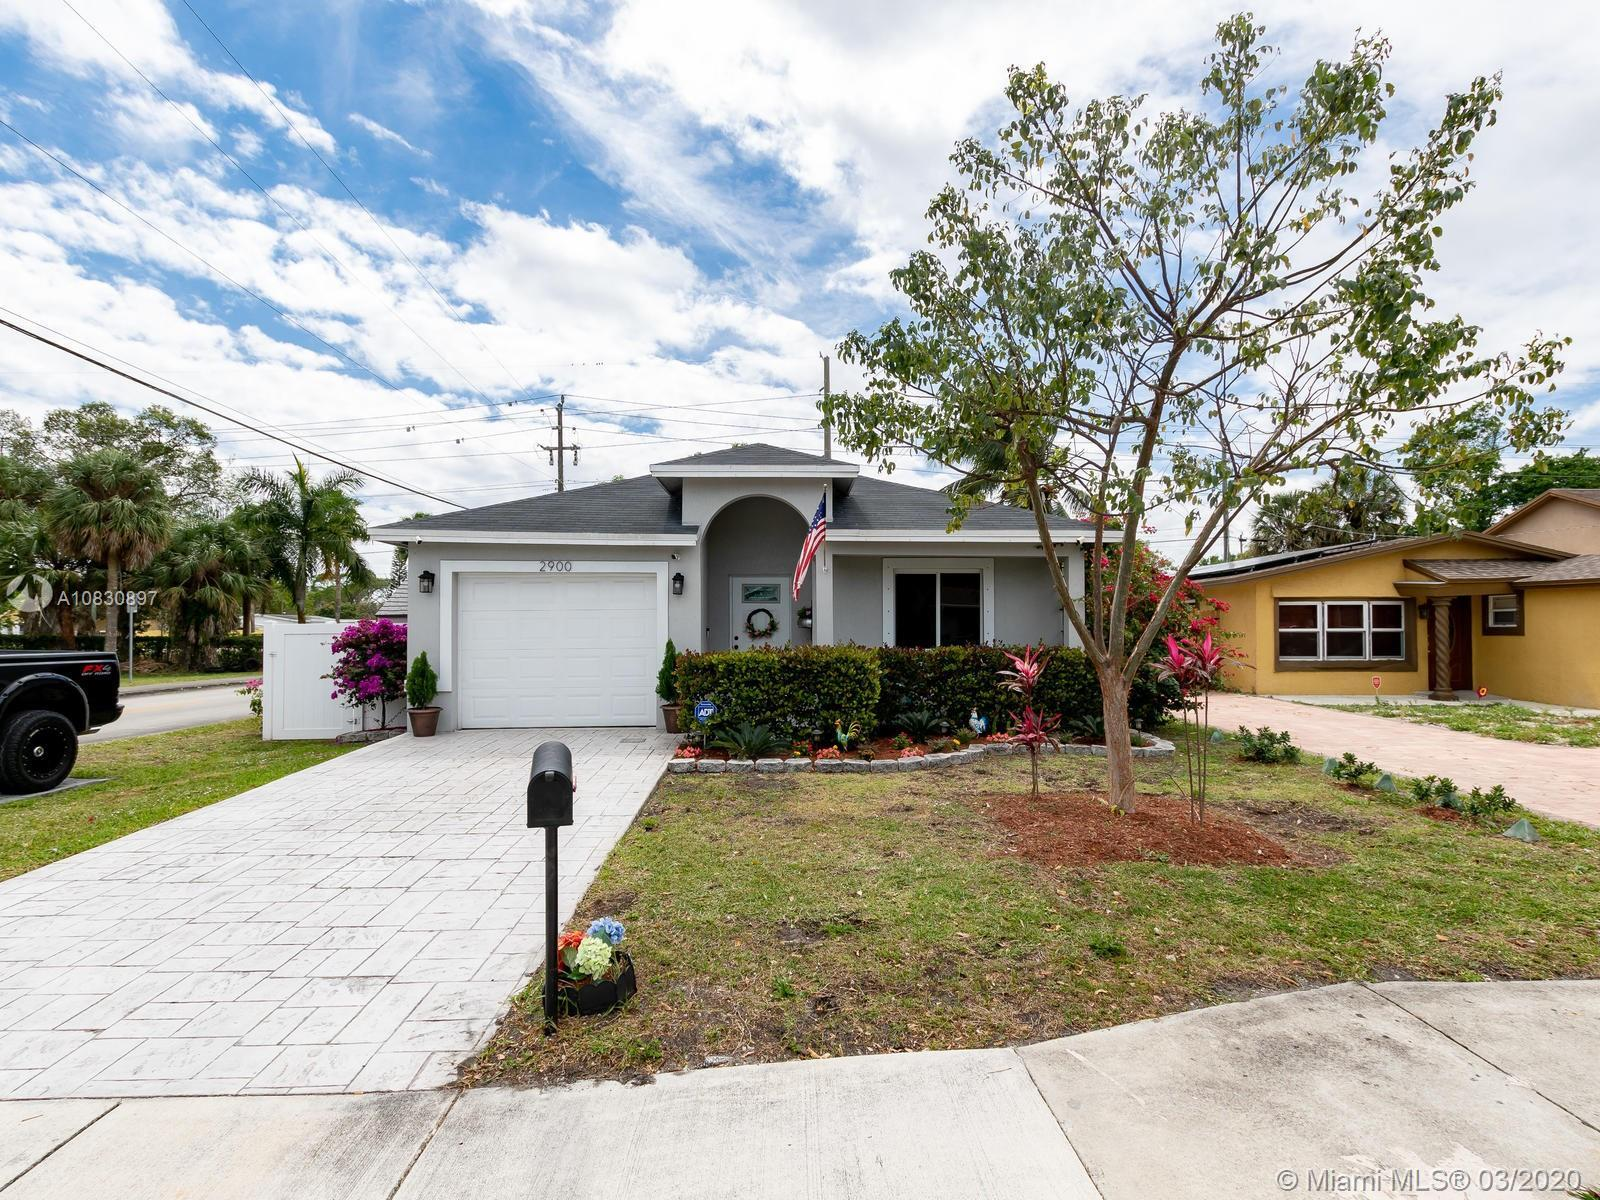 Beautiful modern family home in the heart of Ft. Lauderdale. 3 Bedroom 2 Bath single family home bui